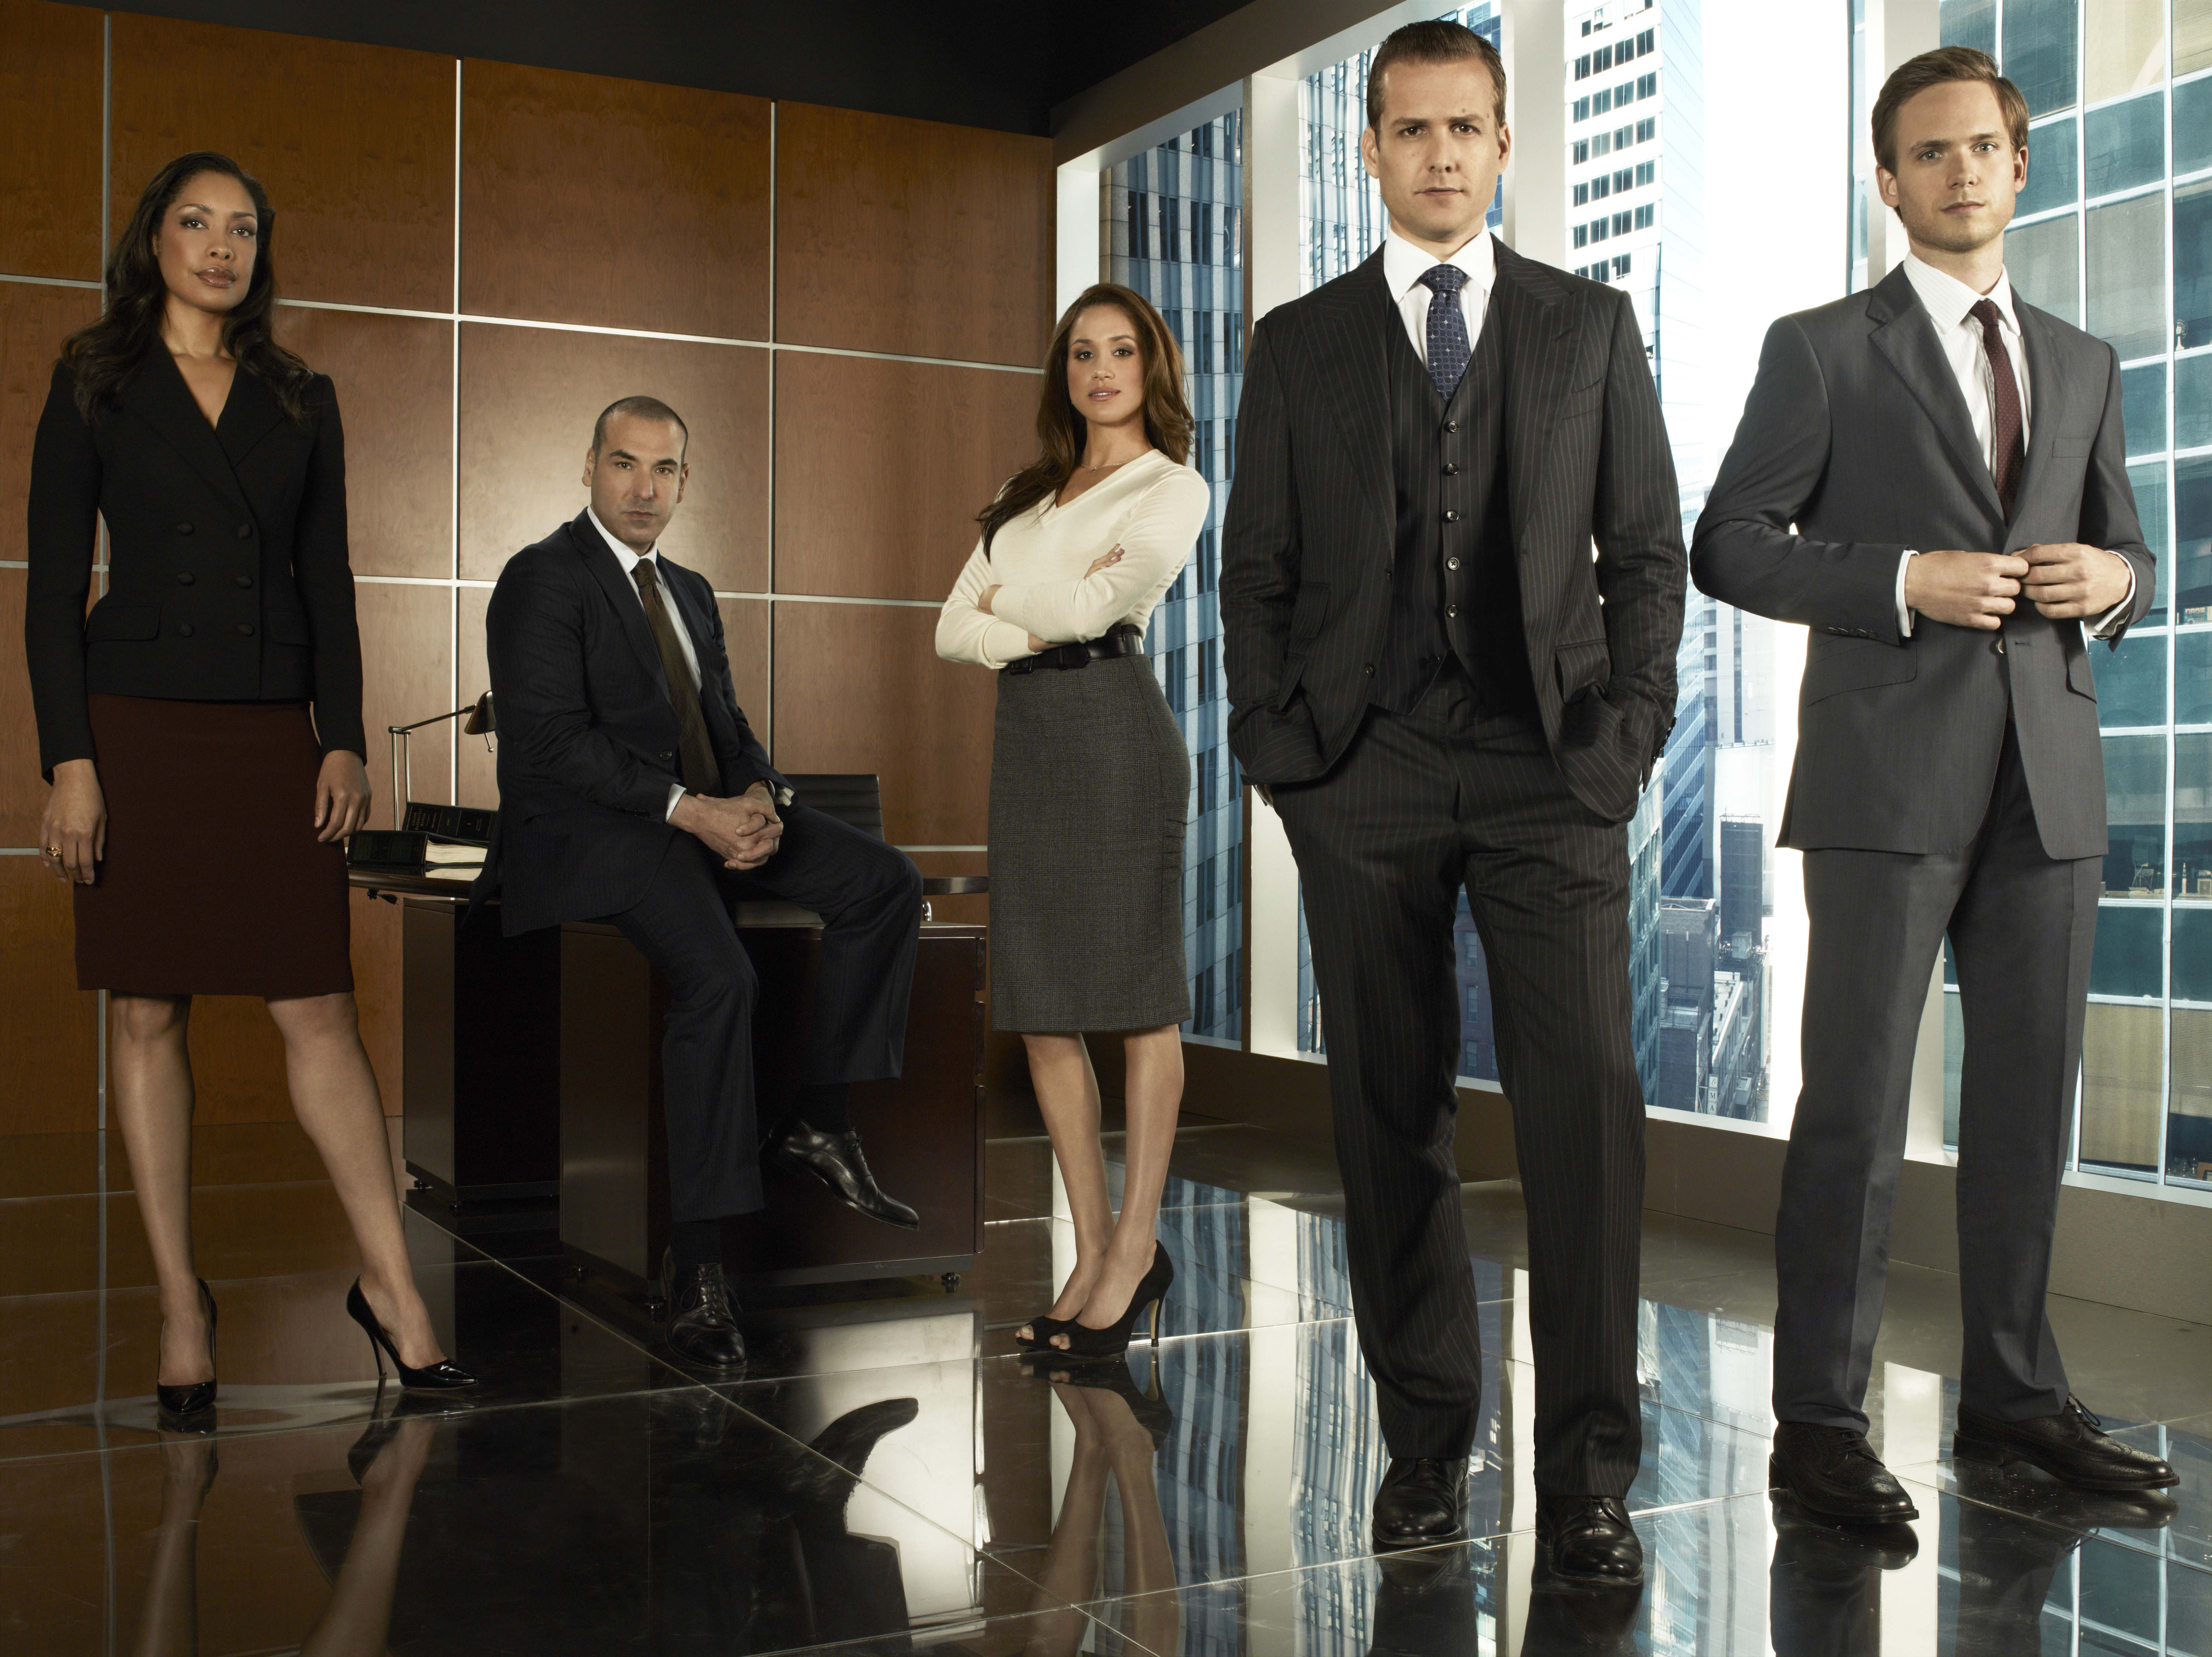 Suits - New Series